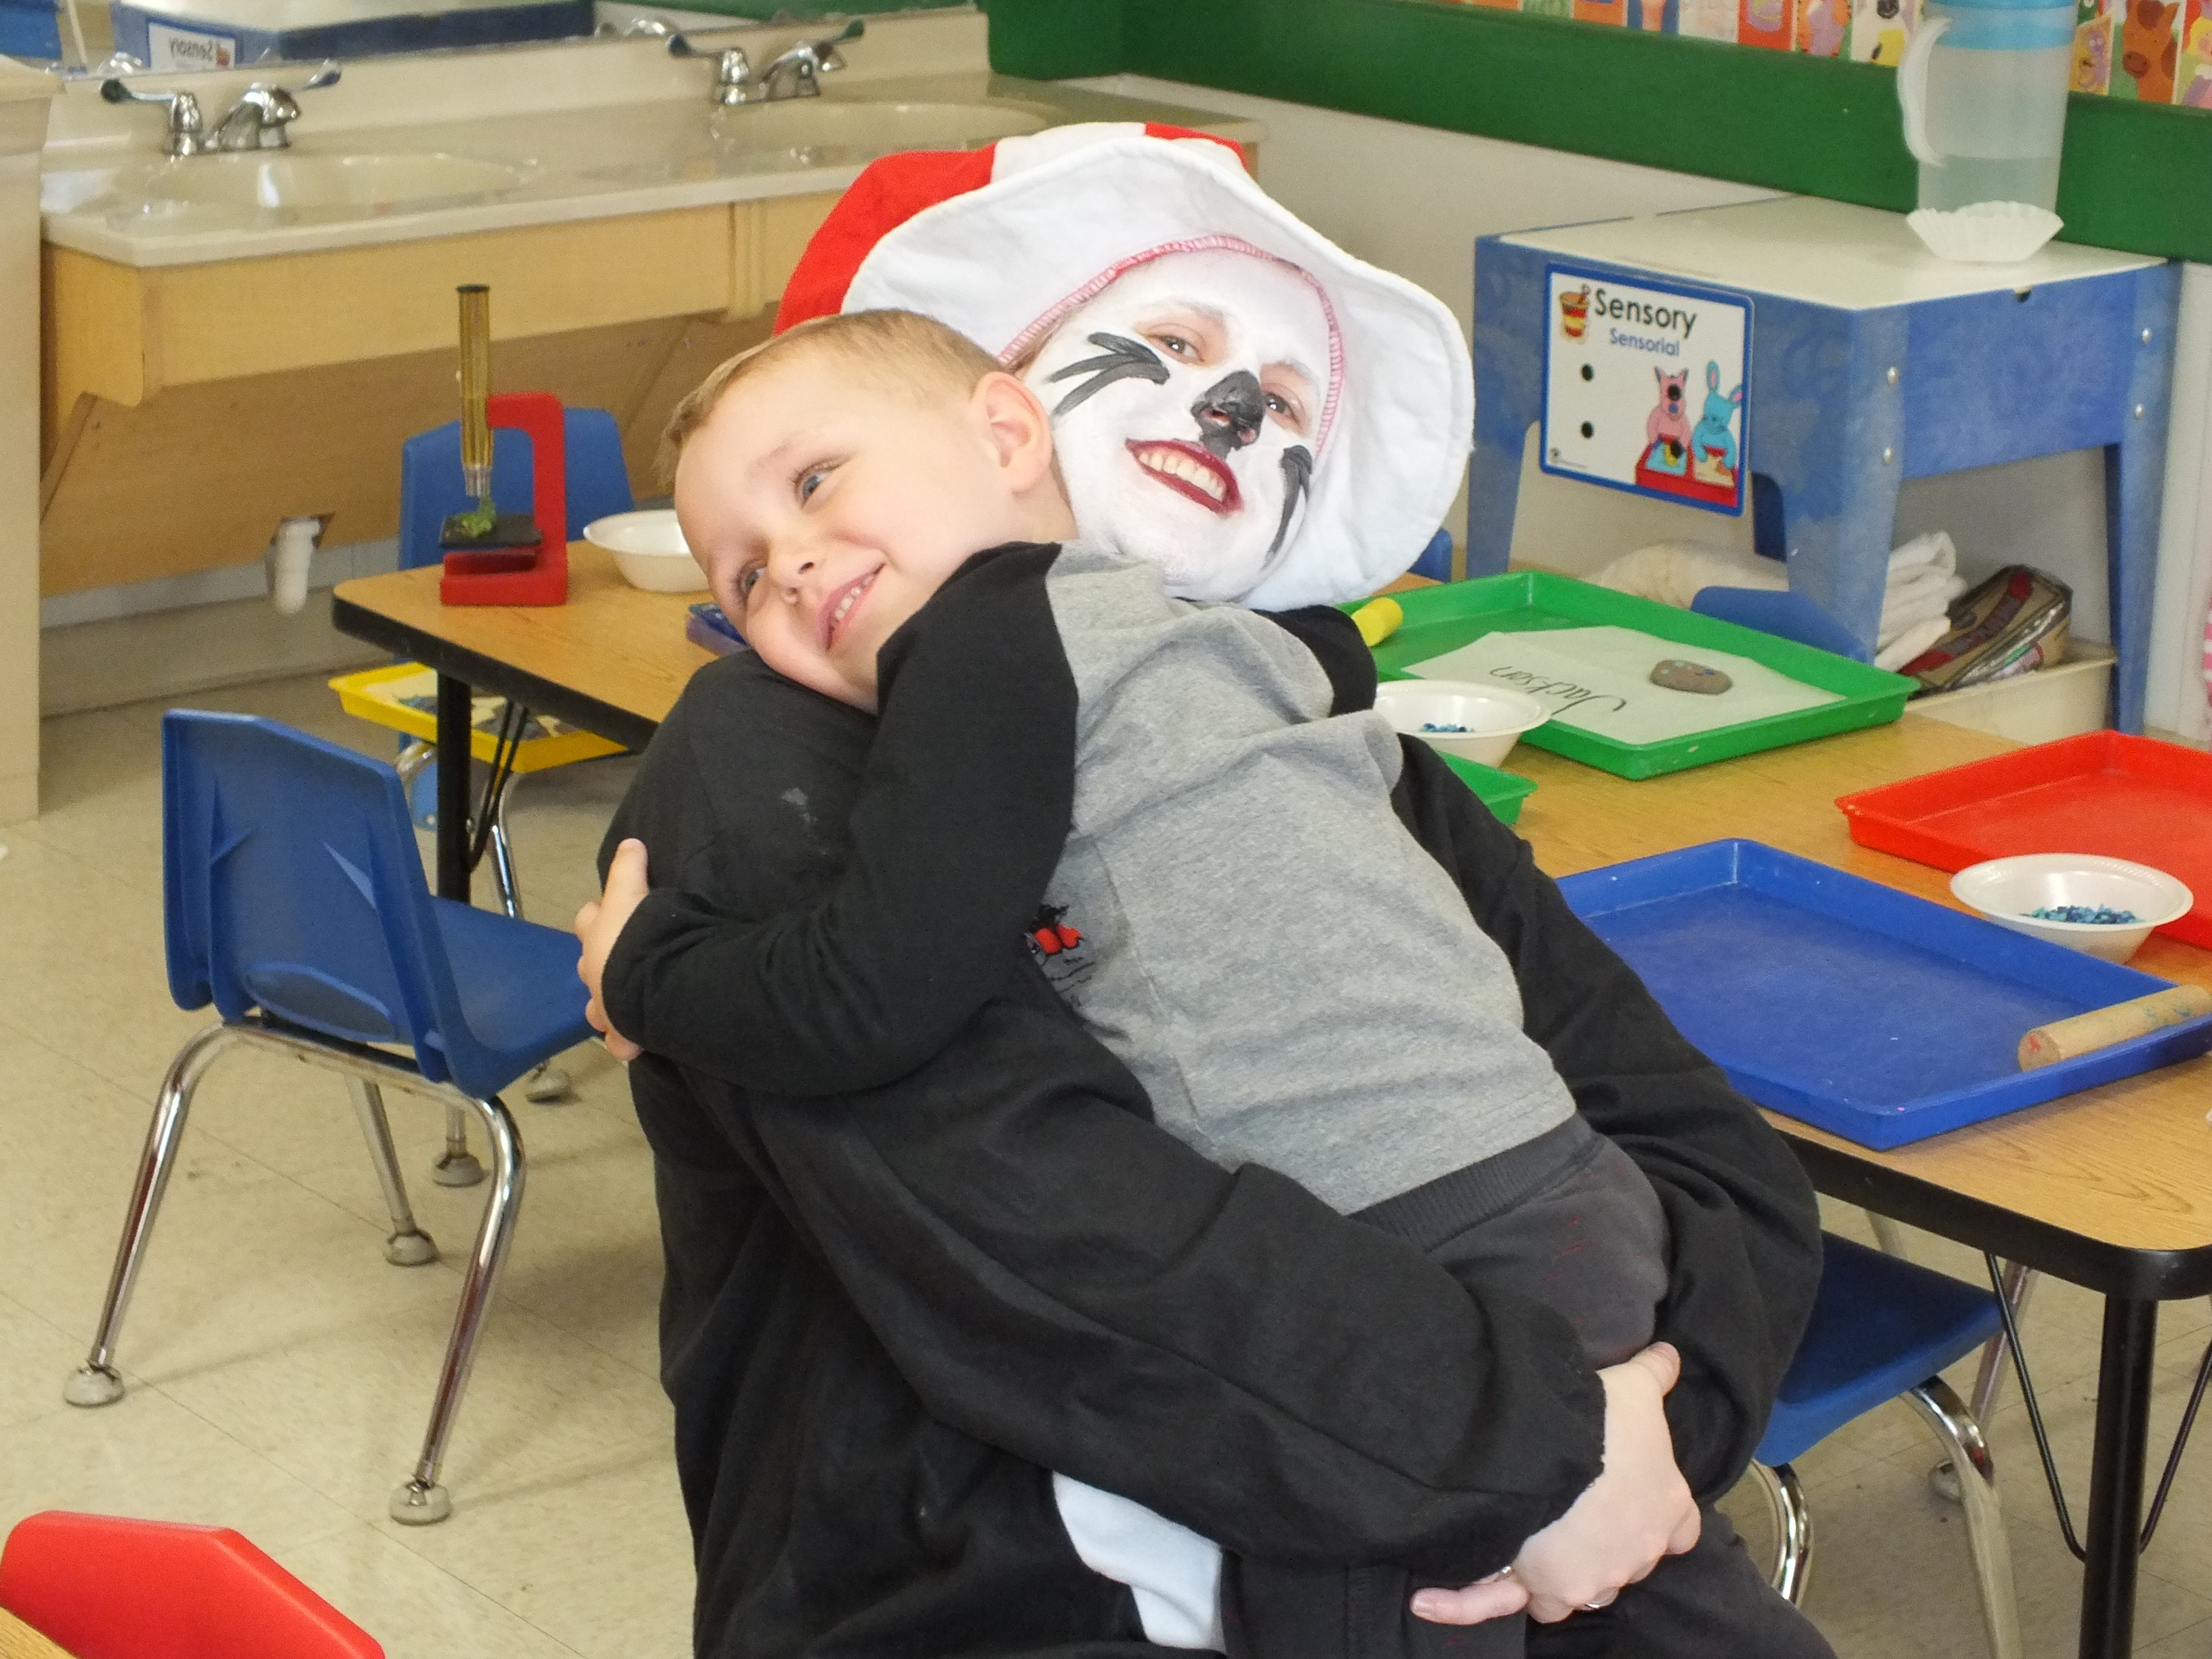 A little boy hugs a woman dressed as Dr. Seuss's Cat in the Hat